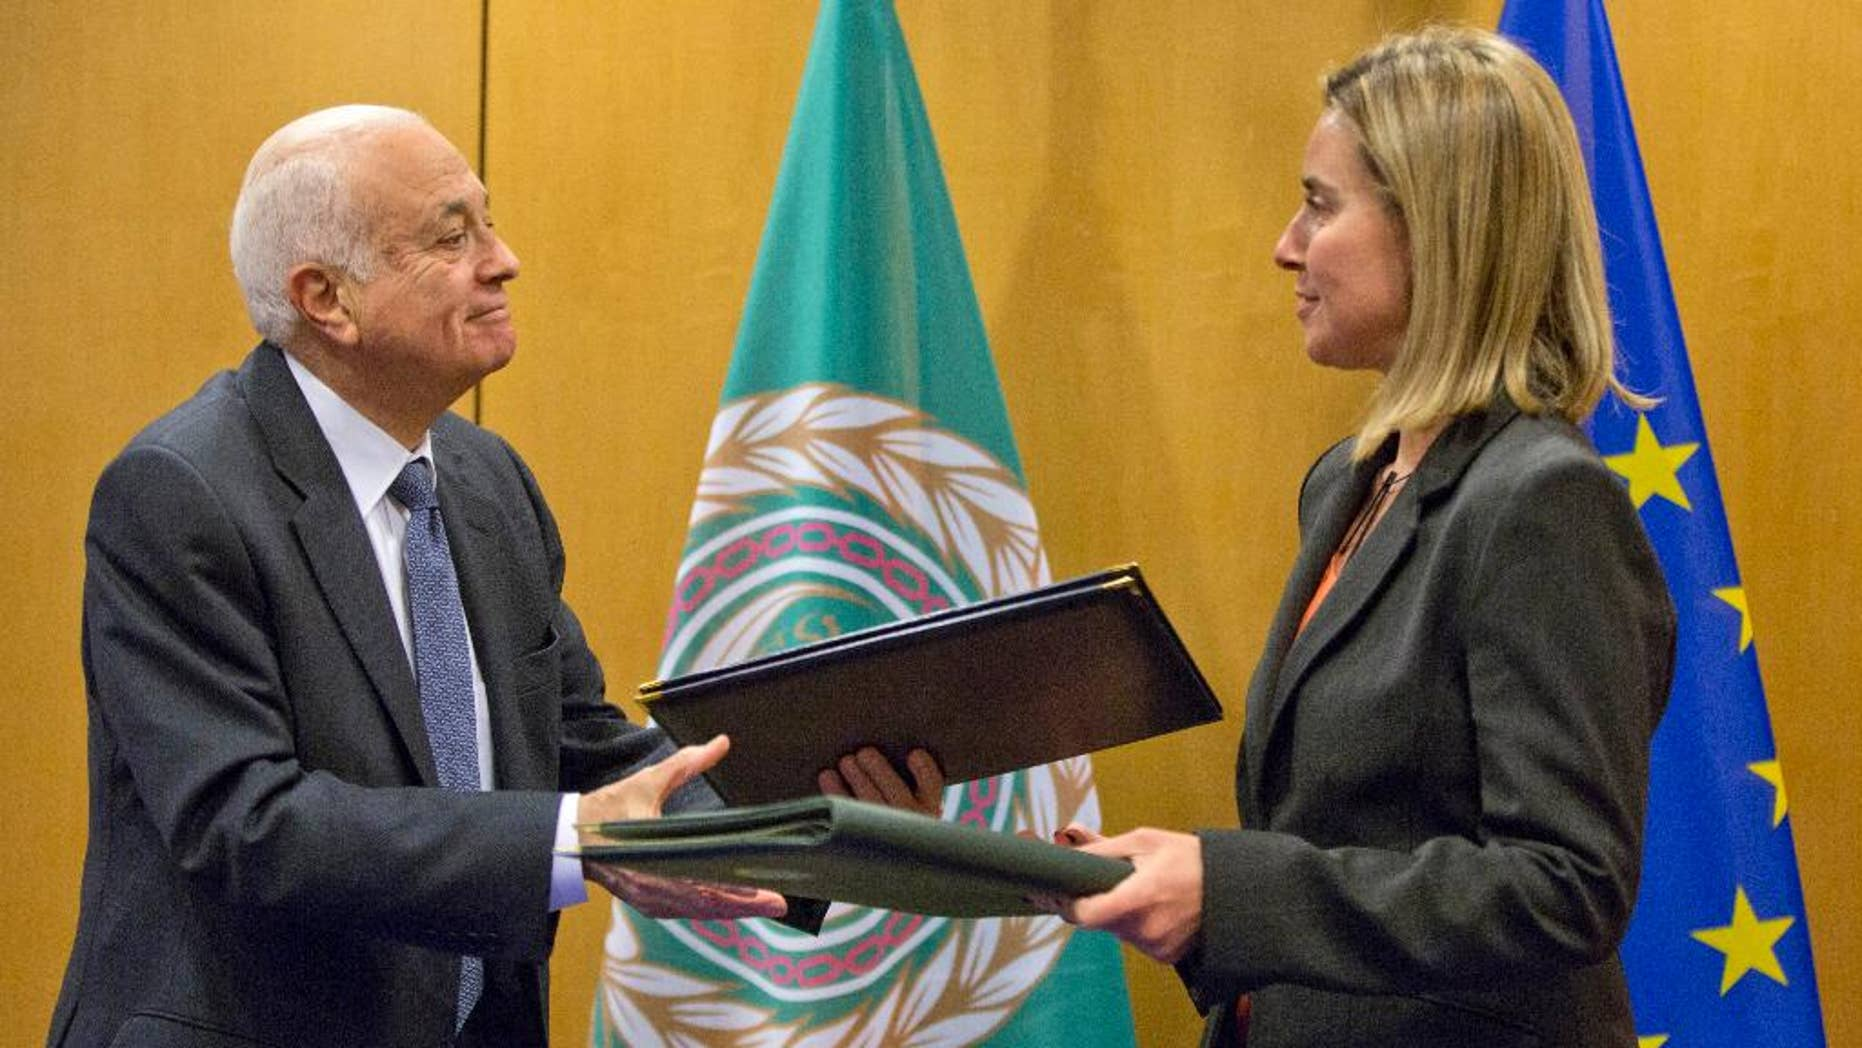 Secretary General of the Arab League Nabil Al-Araby, left, exchanges booklets with European Union High Representative Federica Mogherini after signing a cooperation agreement after a meeting of EU foreign ministers in Brussels on Monday, Jan. 19, 2015. The European Union is calling for an anti-terror alliance with Arab countries to boost cooperation and information sharing in the wake of deadly attacks and arrests across Europe linked to foreign fighters. (AP Photo/Virginia Mayo)